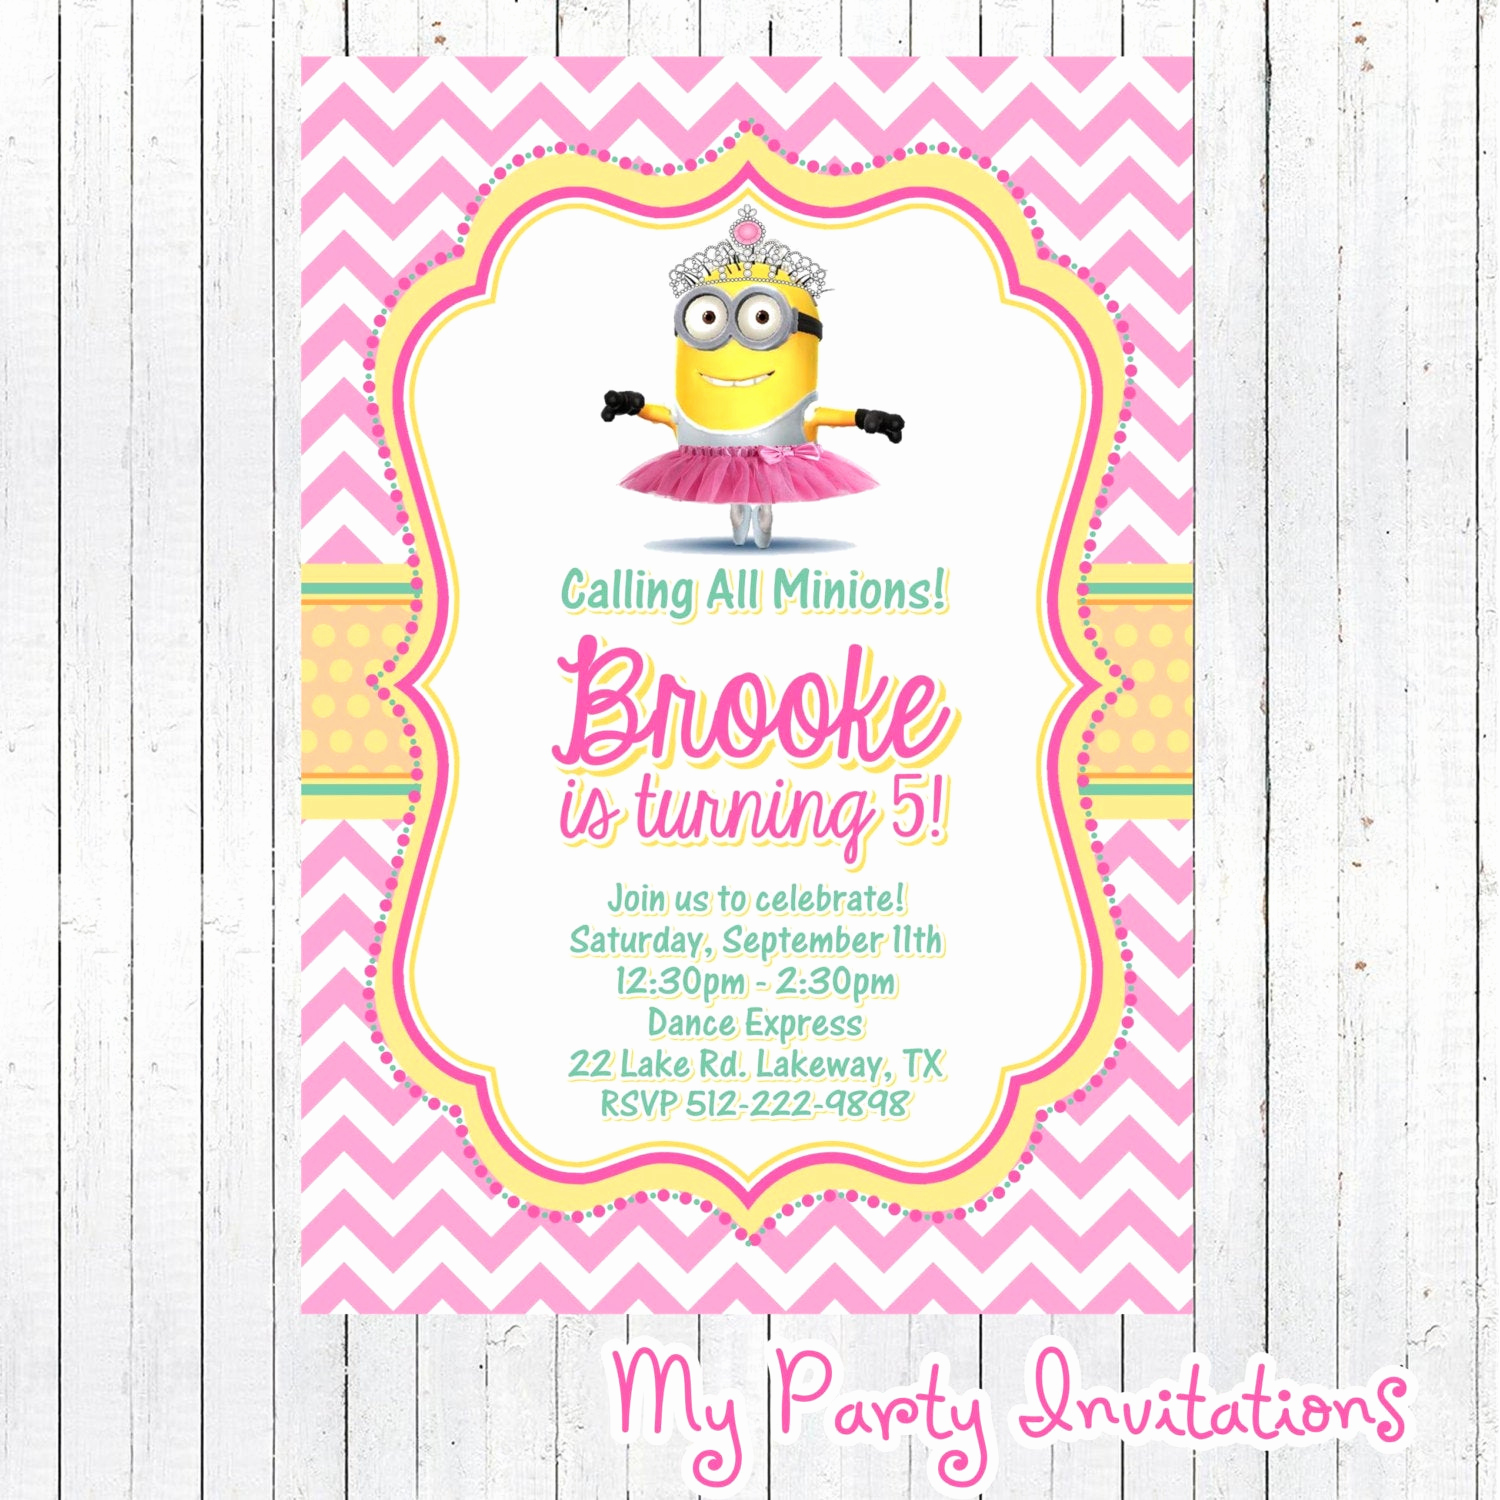 Minions Birthday Invitation Template Beautiful Girly Princess Minion Despicable Me Birthday by